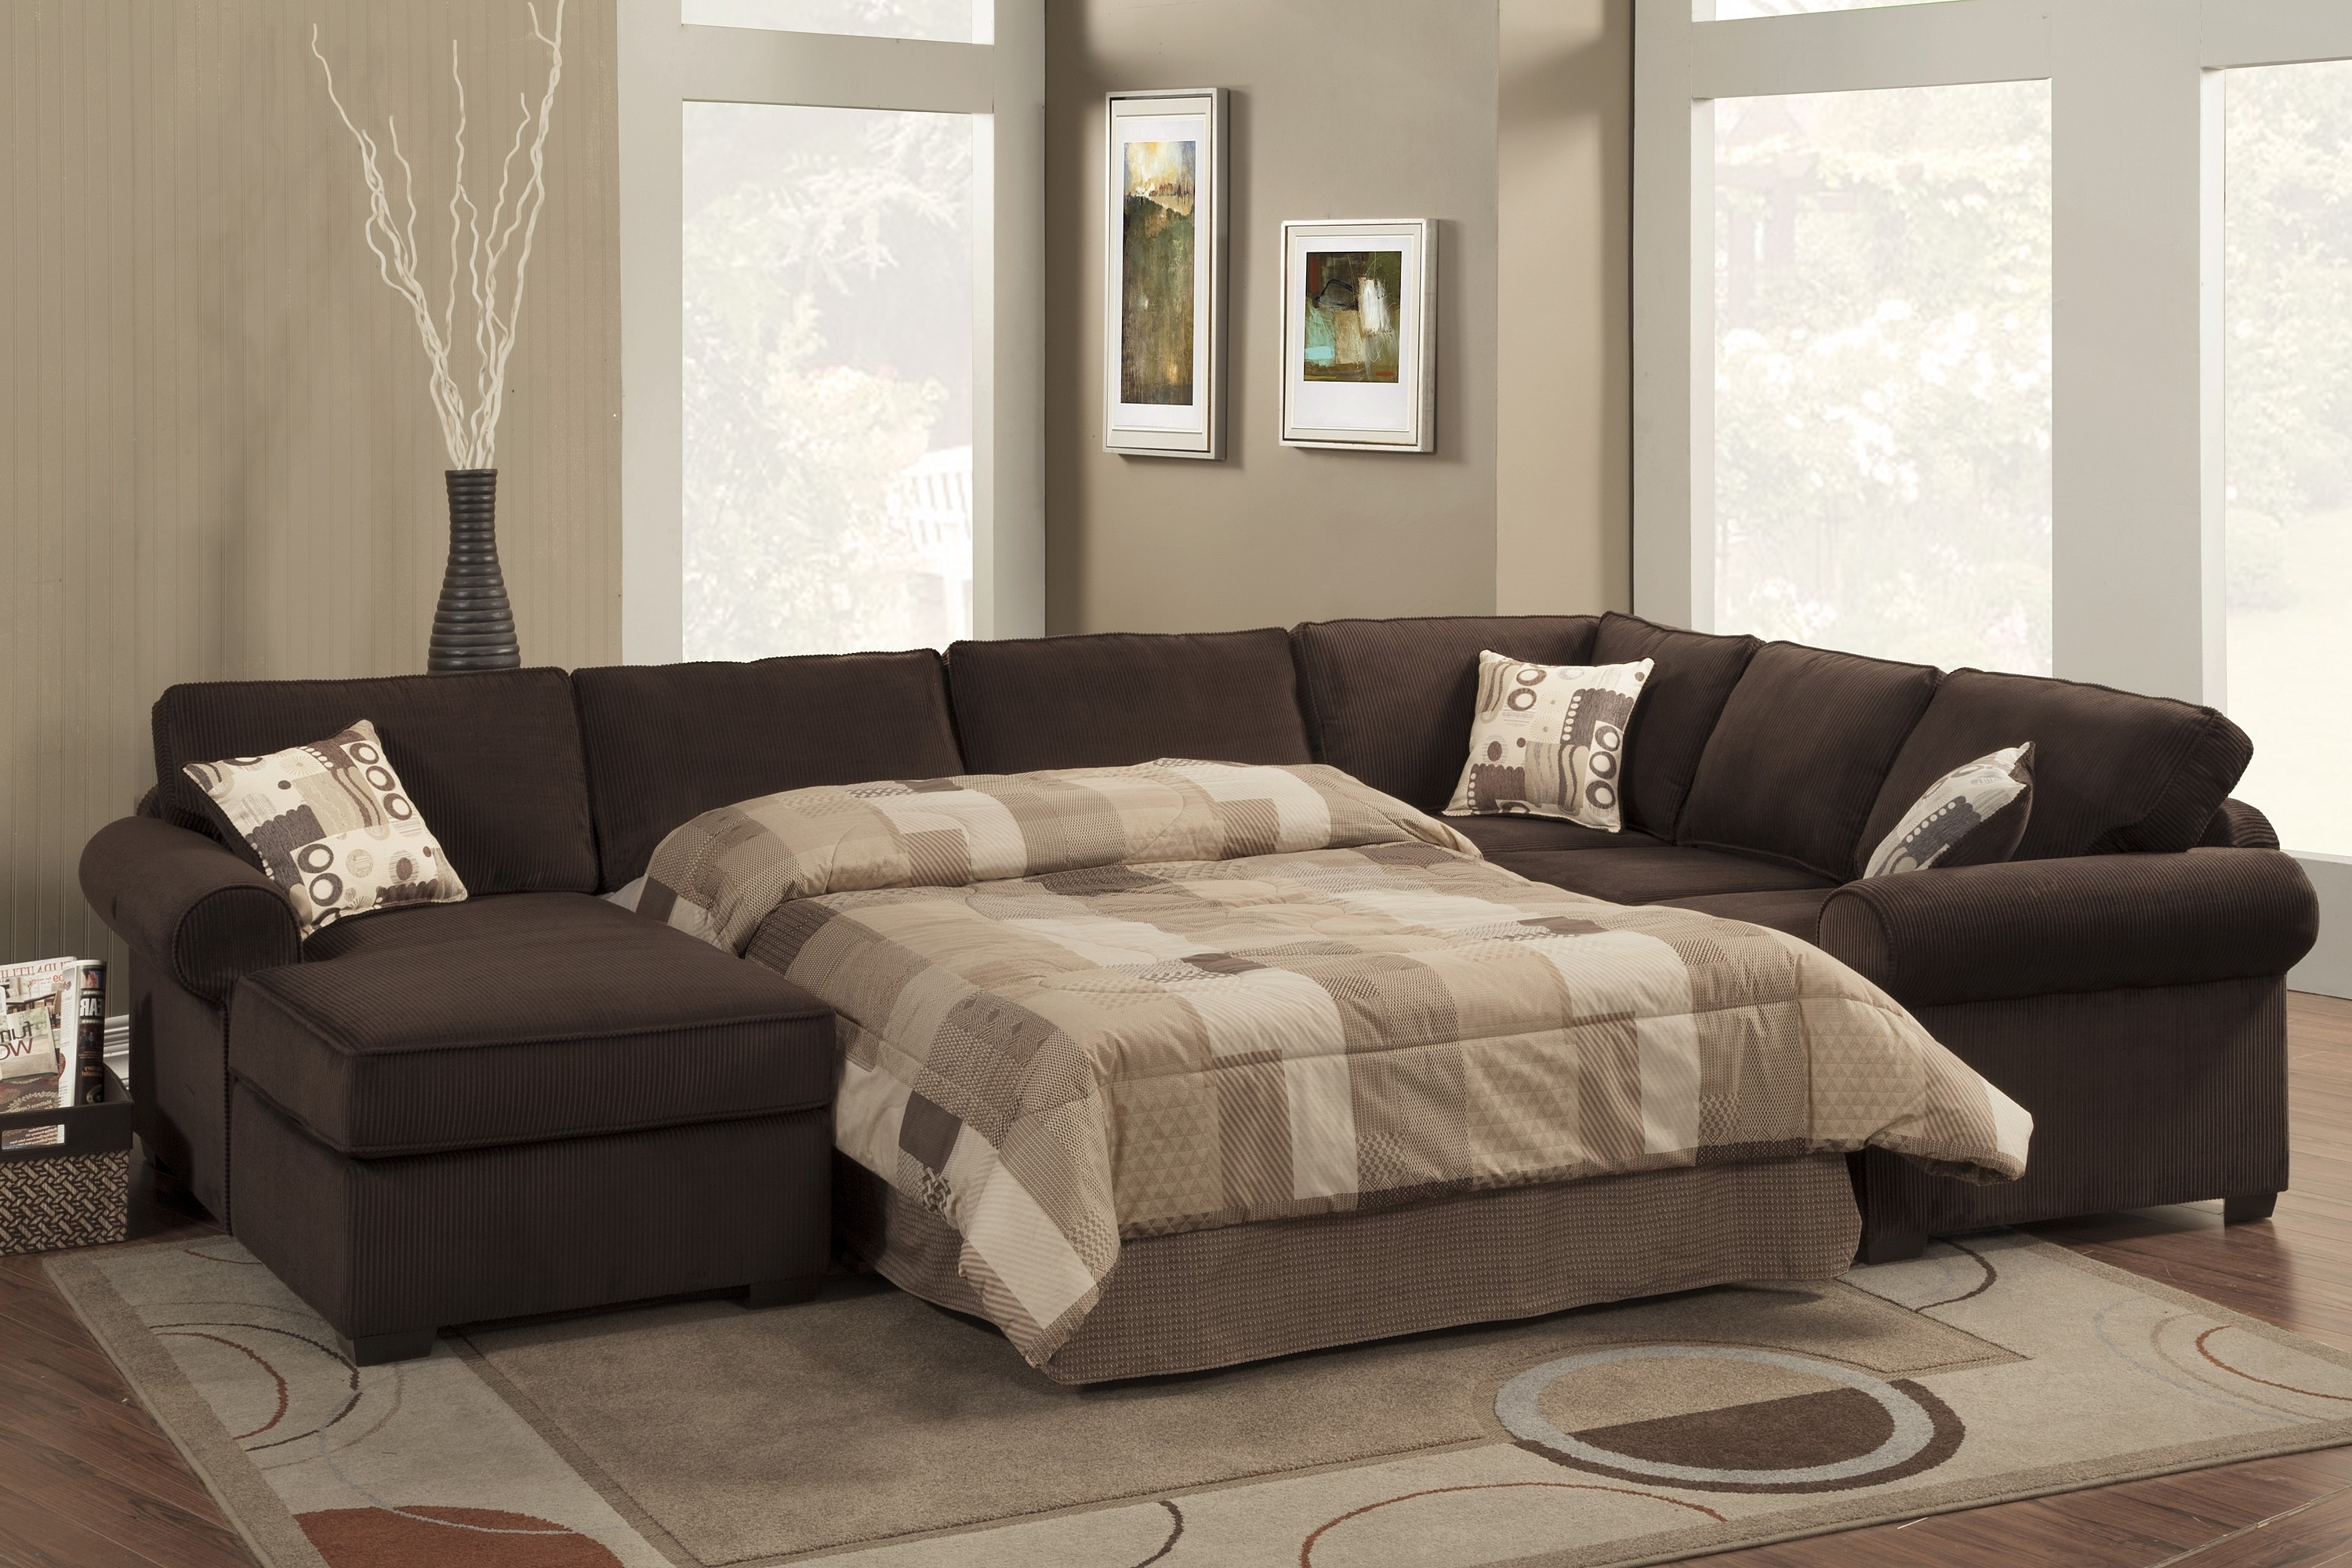 Well Known Furniture: American Freight Sectionals For Luxury Living Room Intended For Huntsville Al Sectional Sofas (View 17 of 20)